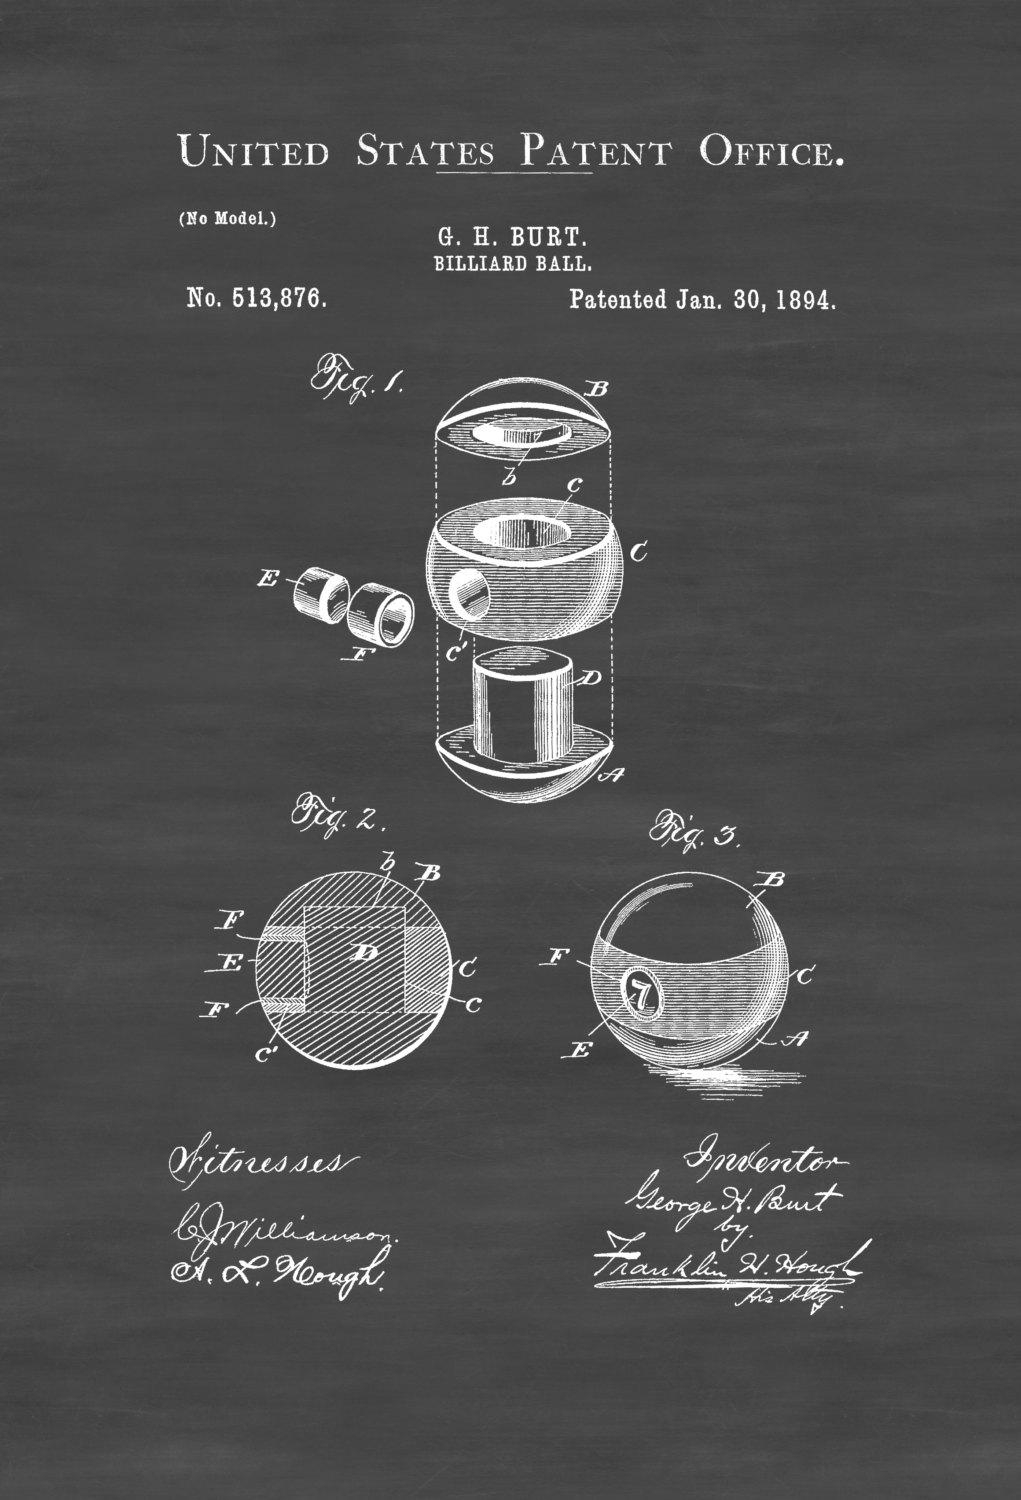 Billiard Ball Patent 1894 – Patent Print, Wall Decor, Pool Table Intended For Billiard Wall Art (Image 3 of 20)